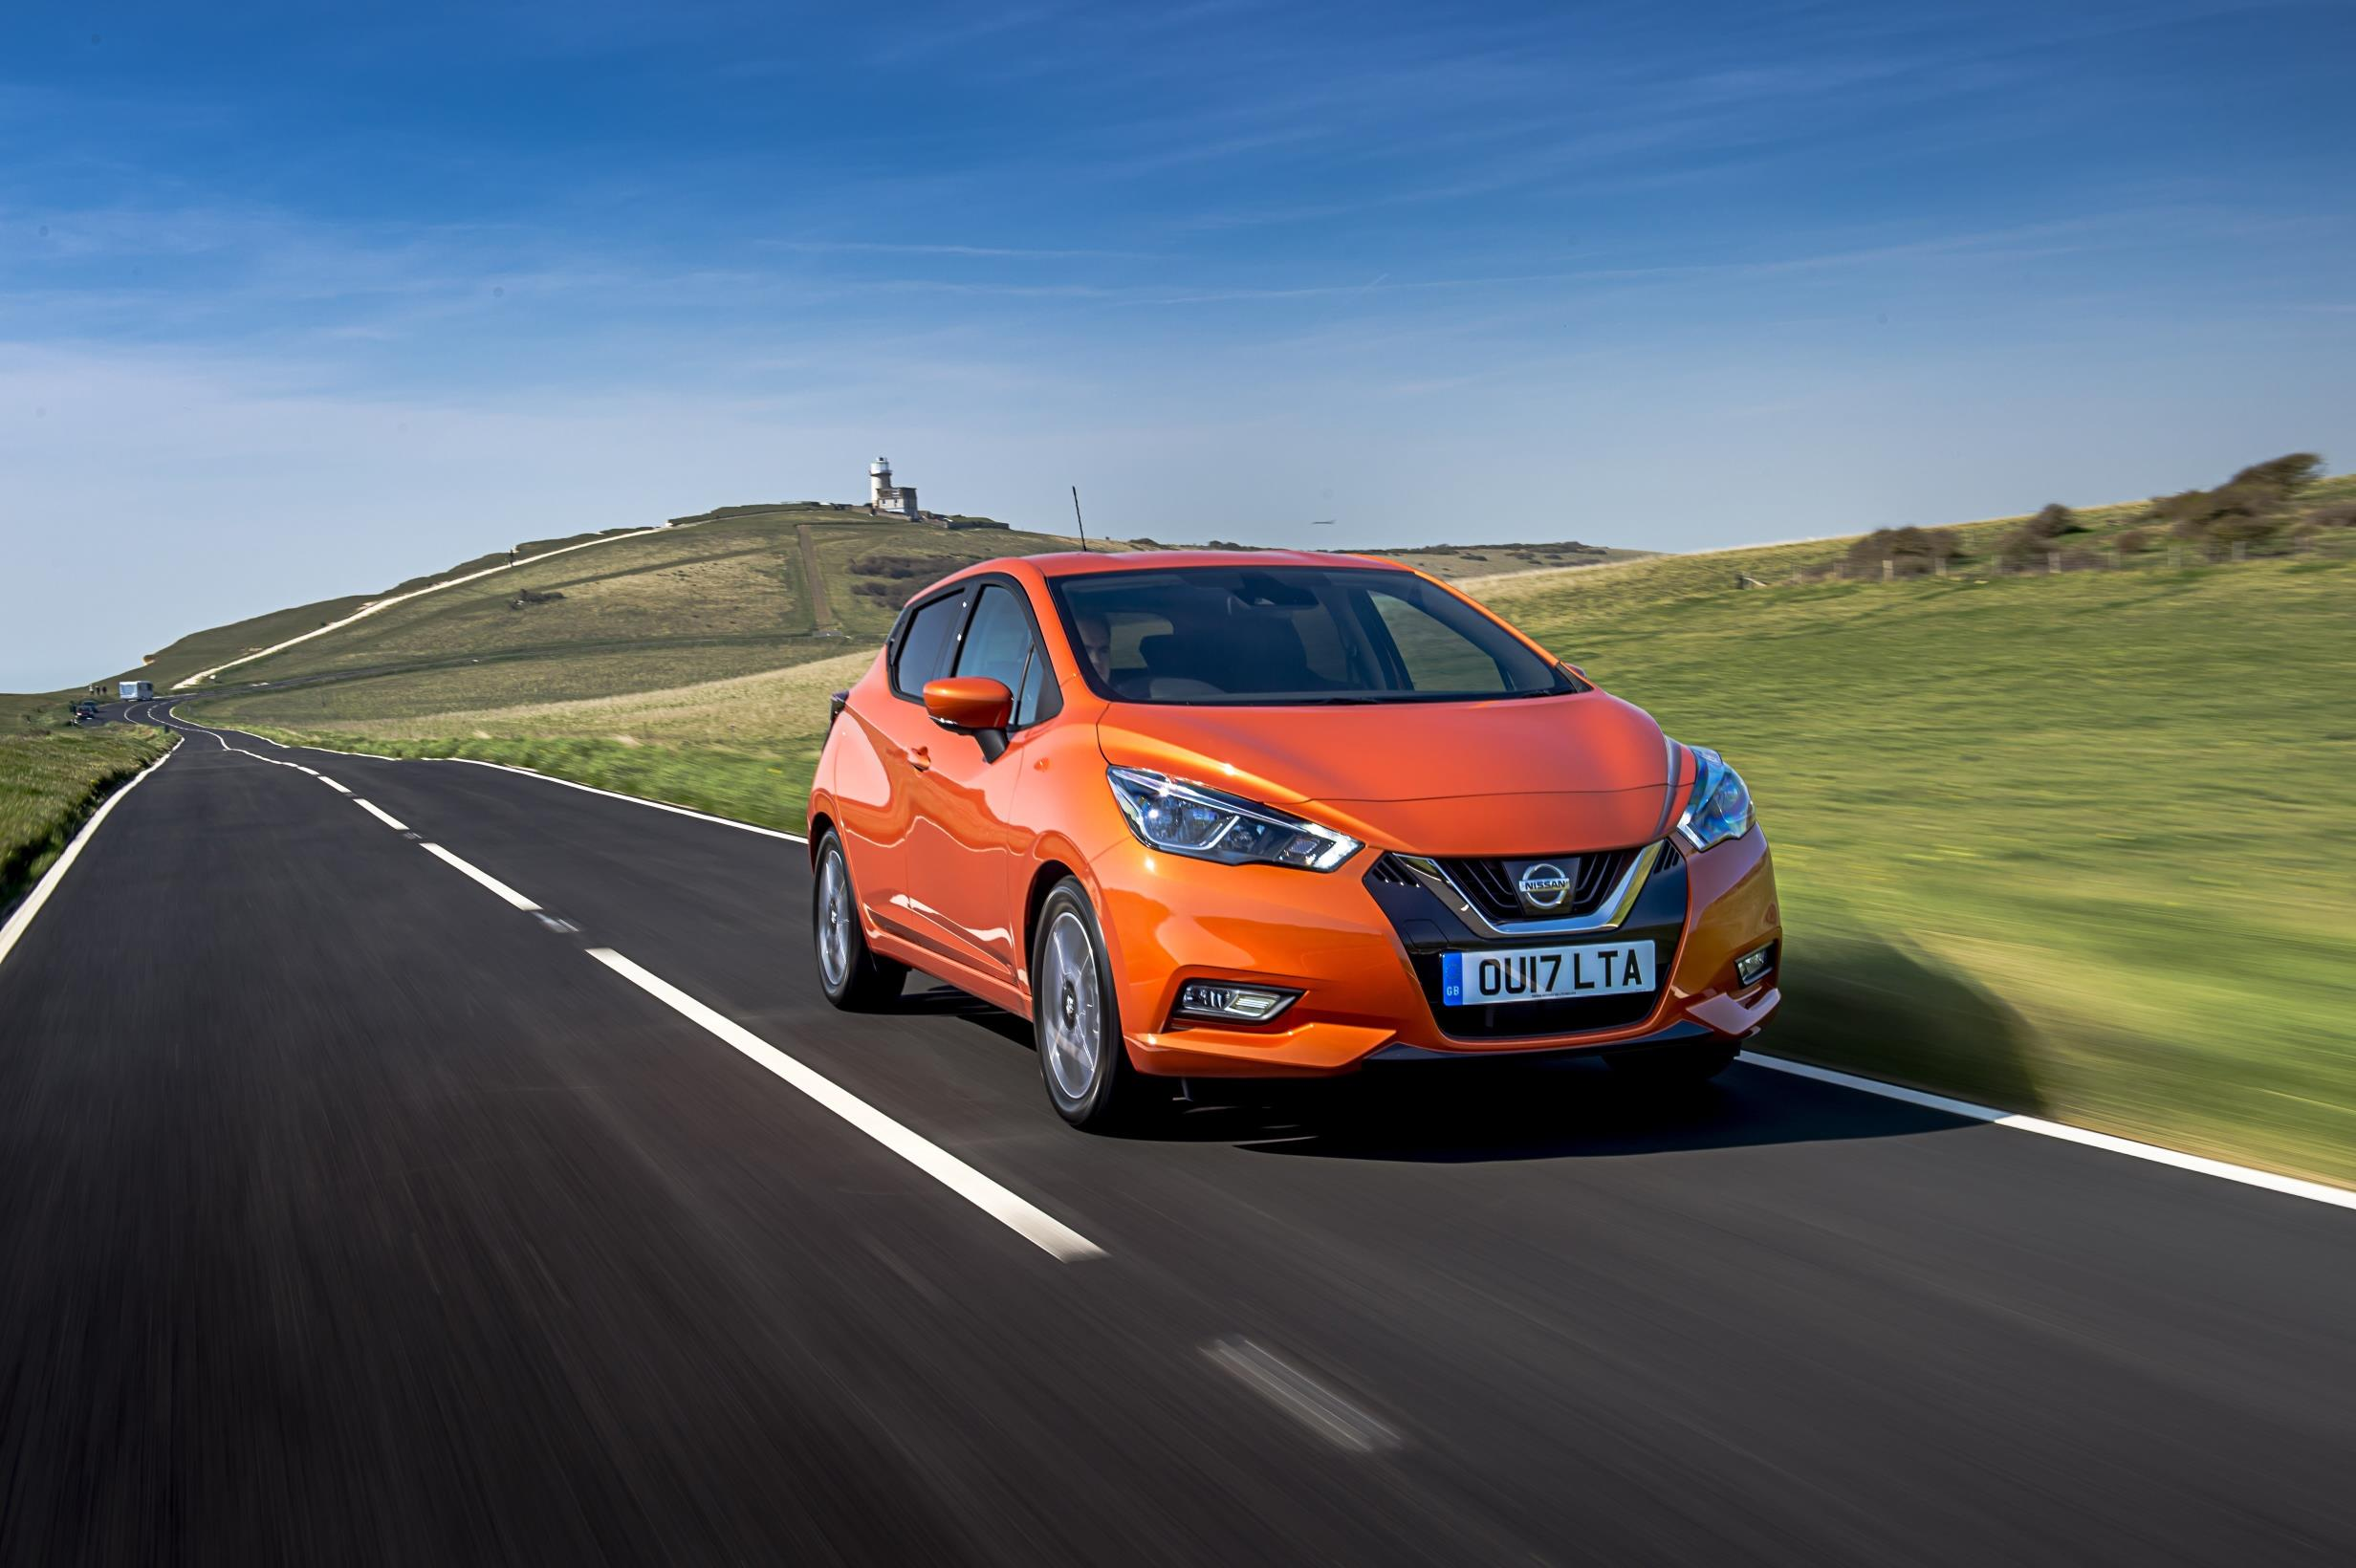 Nissan Micra   We love the Nissan Micra's striking looks, rock-bottom running costs, and reassuring safety standards. And we applaud Nissan for making autonomous emergency braking standard.